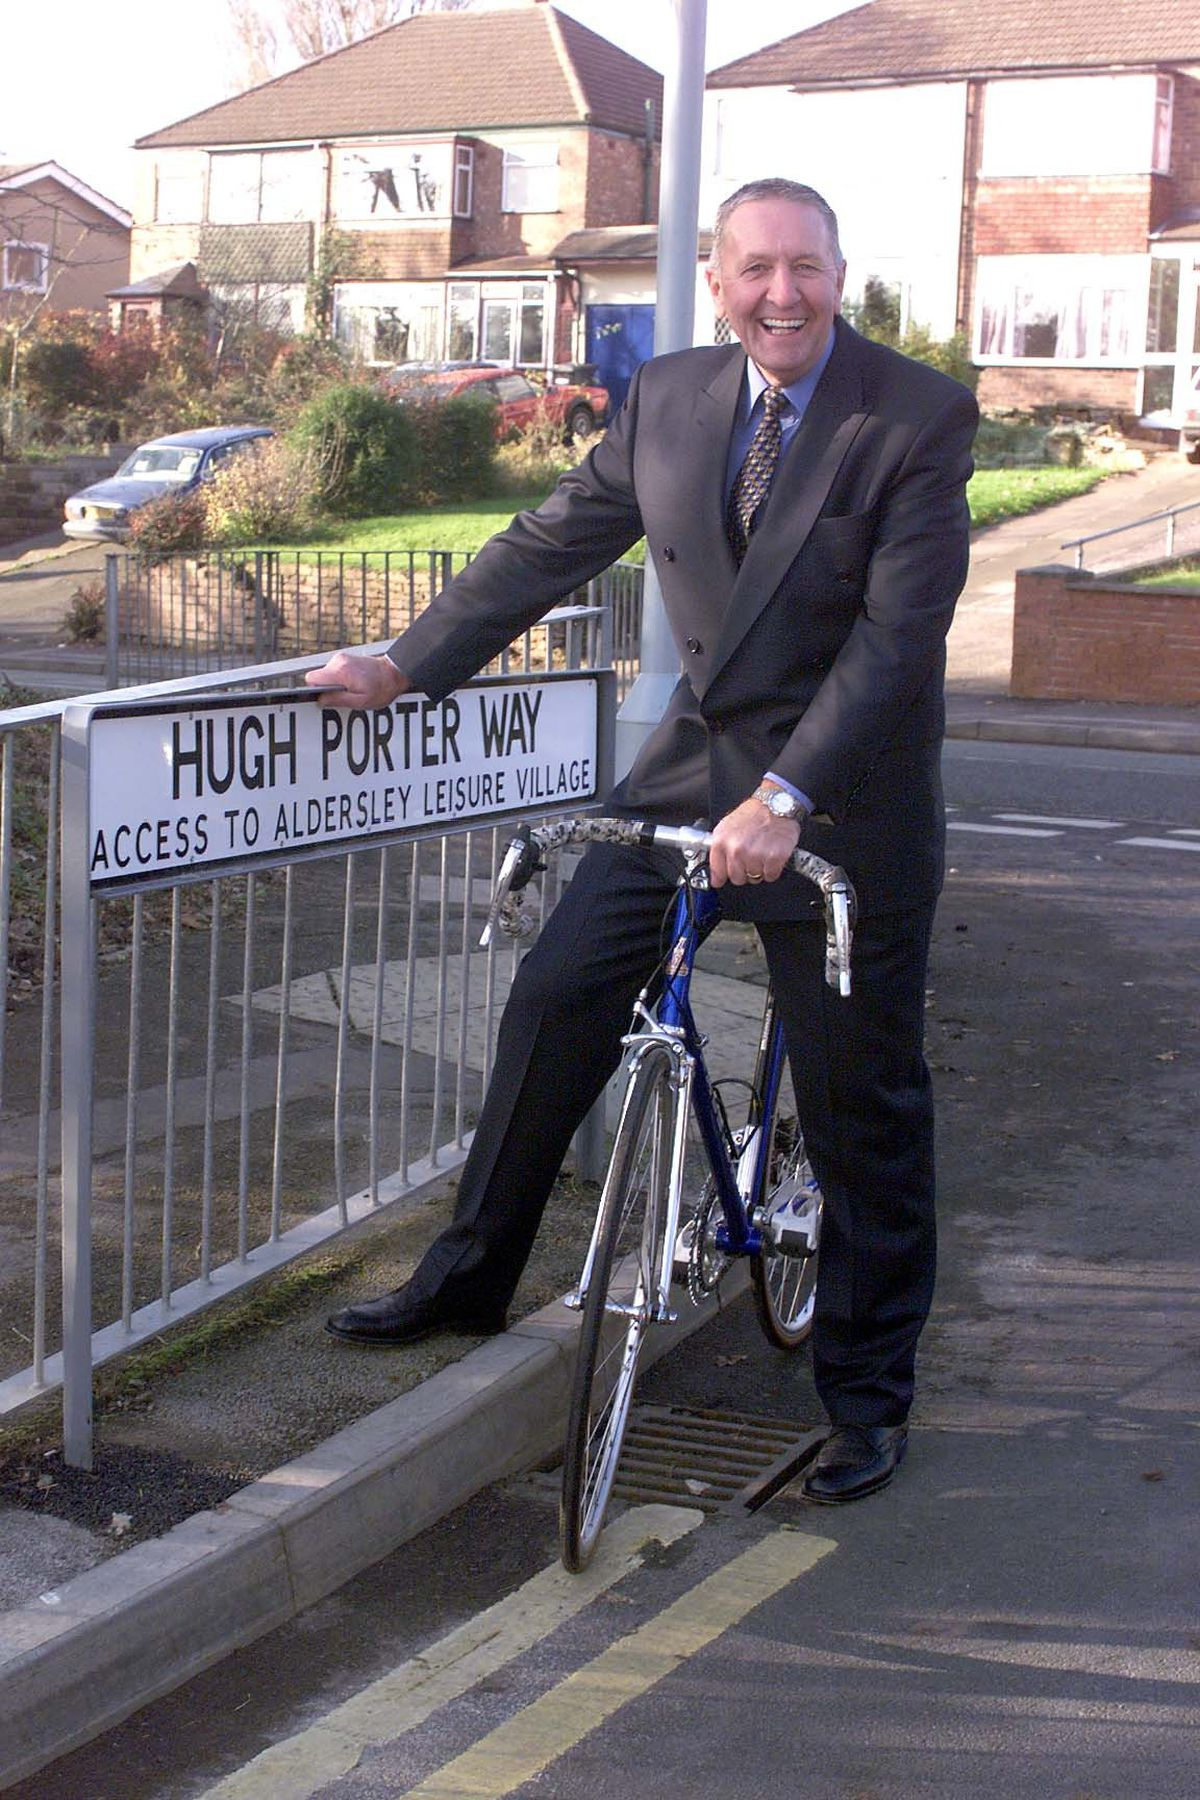 Ex-racing cyclist Hugh Porter poses with the road sign named after him on the road which leads to Aldersley Leisure Village.